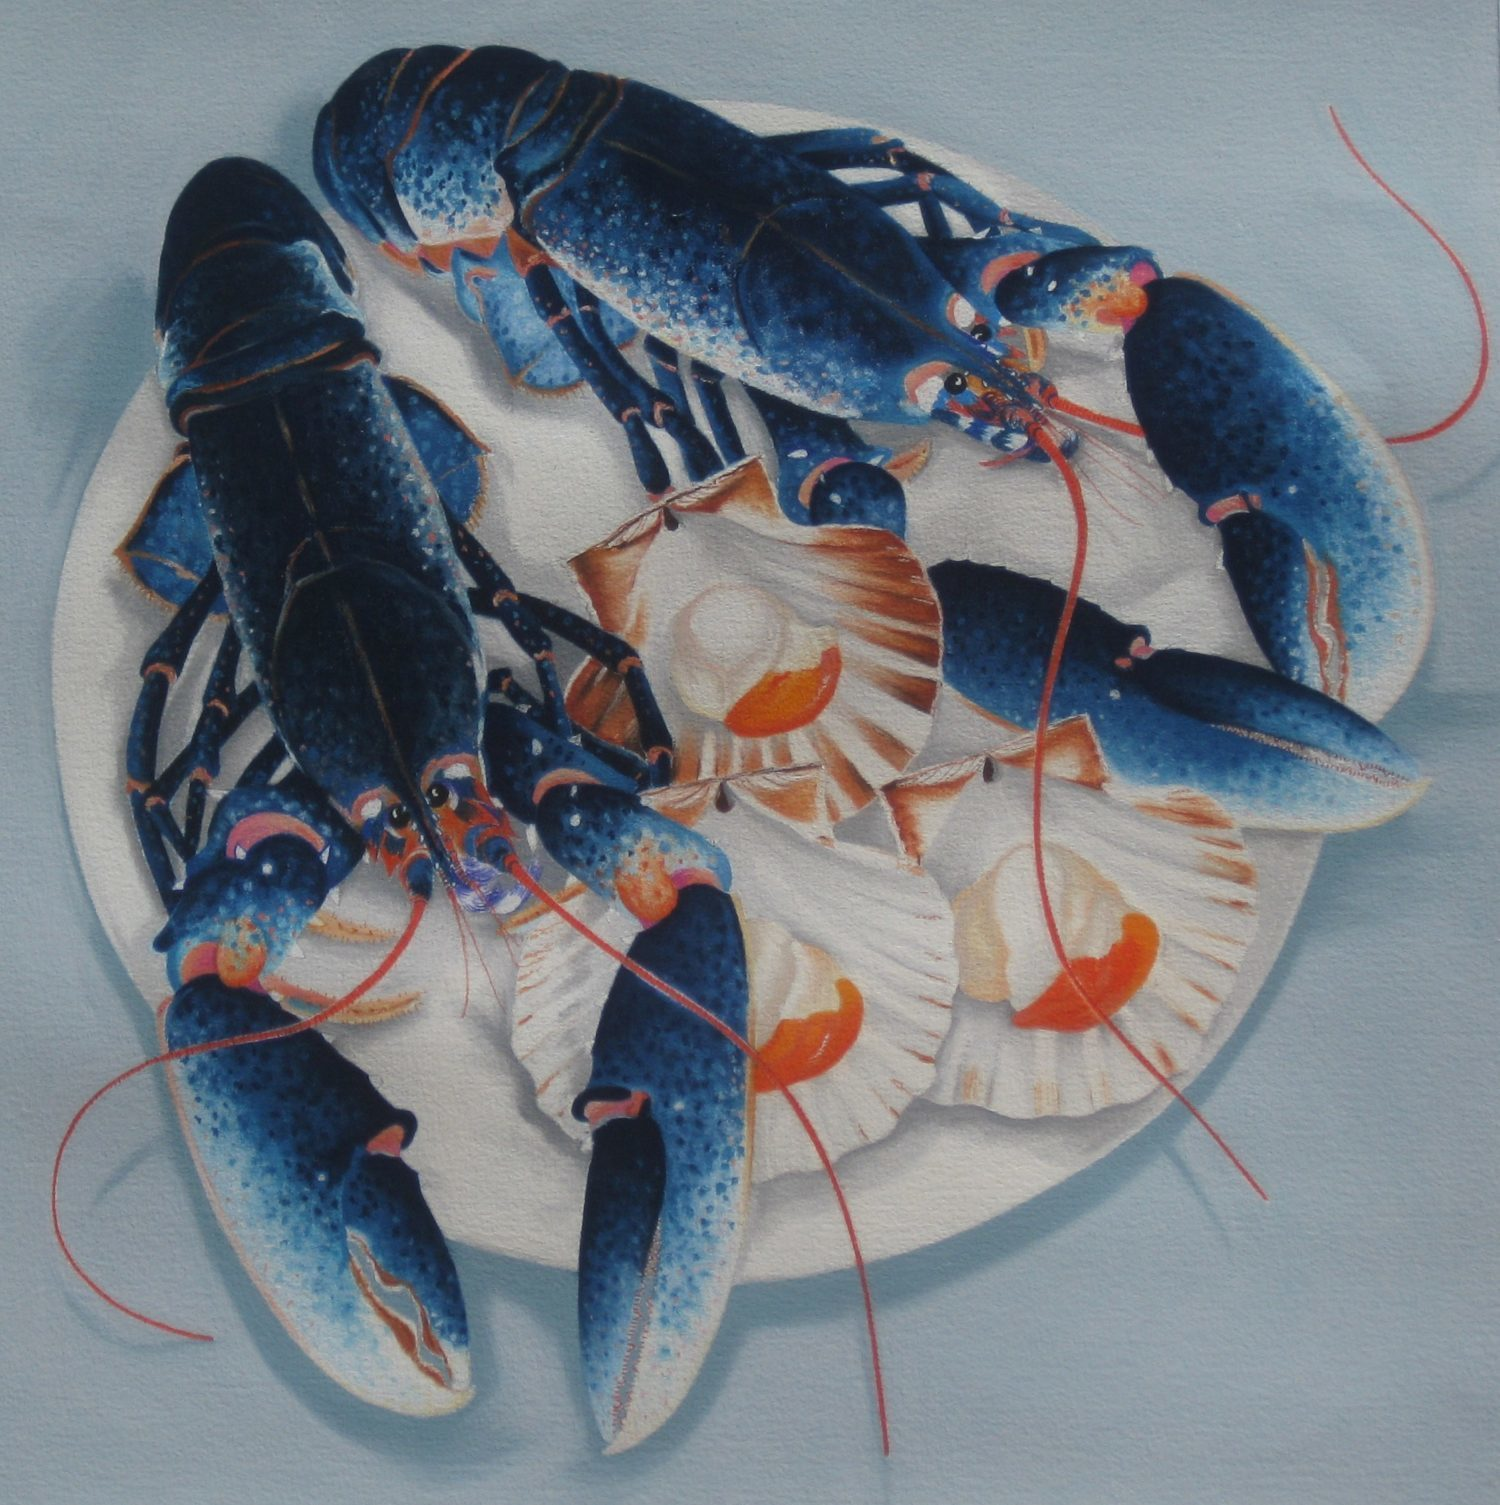 cornish blue lobsters with scallops. Pastle on blockingford watercolour paper. by danka napiorkowska. showing at the rock summer exhibition, rock institute, cornwall